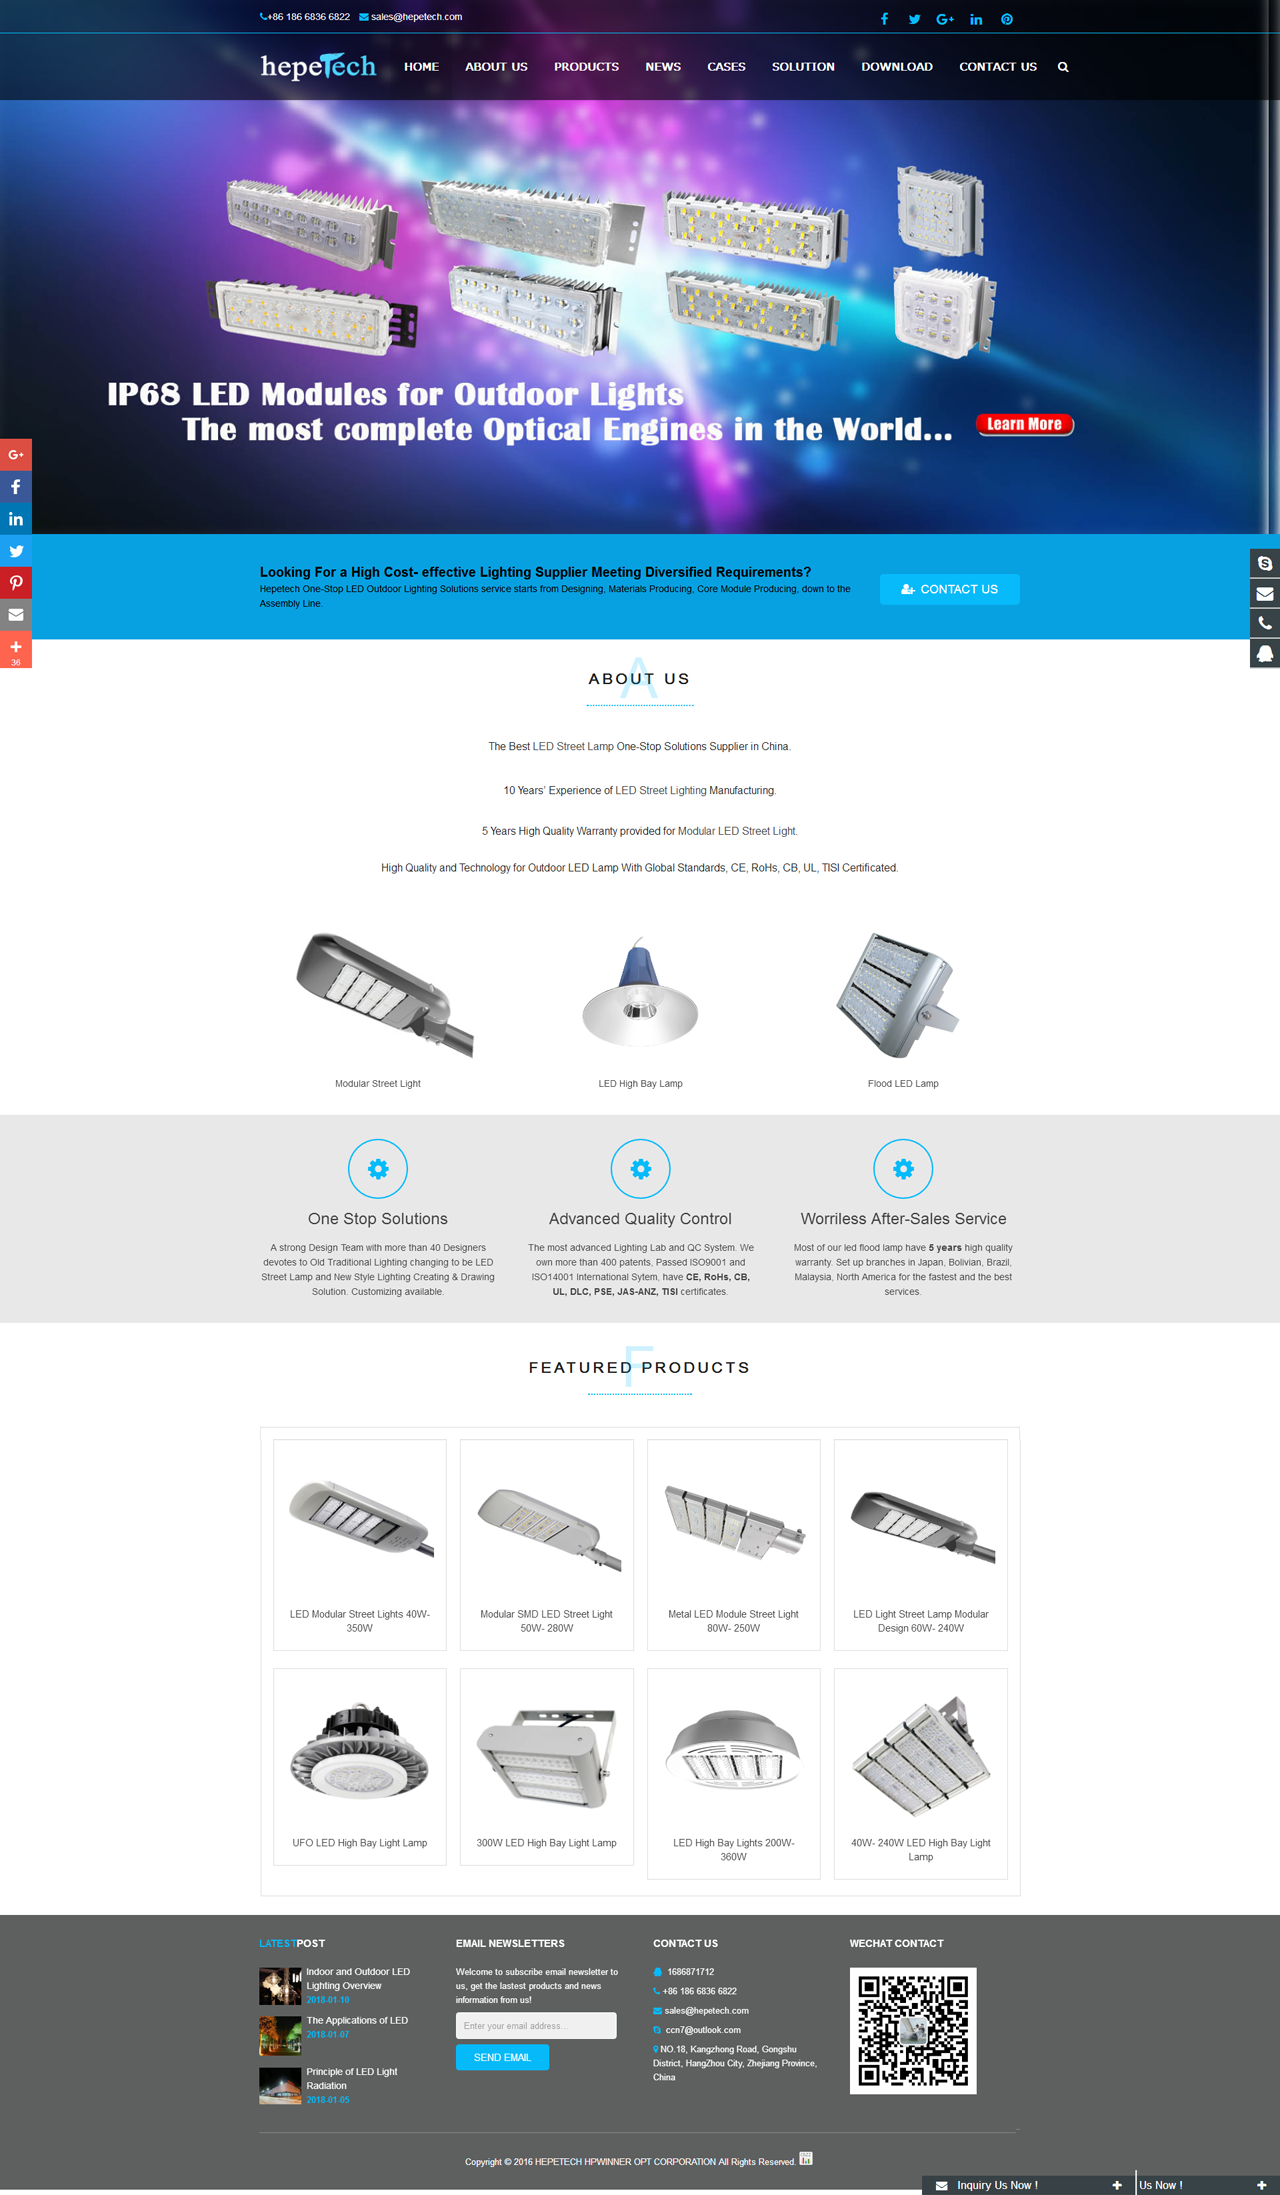 The Best LED Street Lamp Suppliers in China